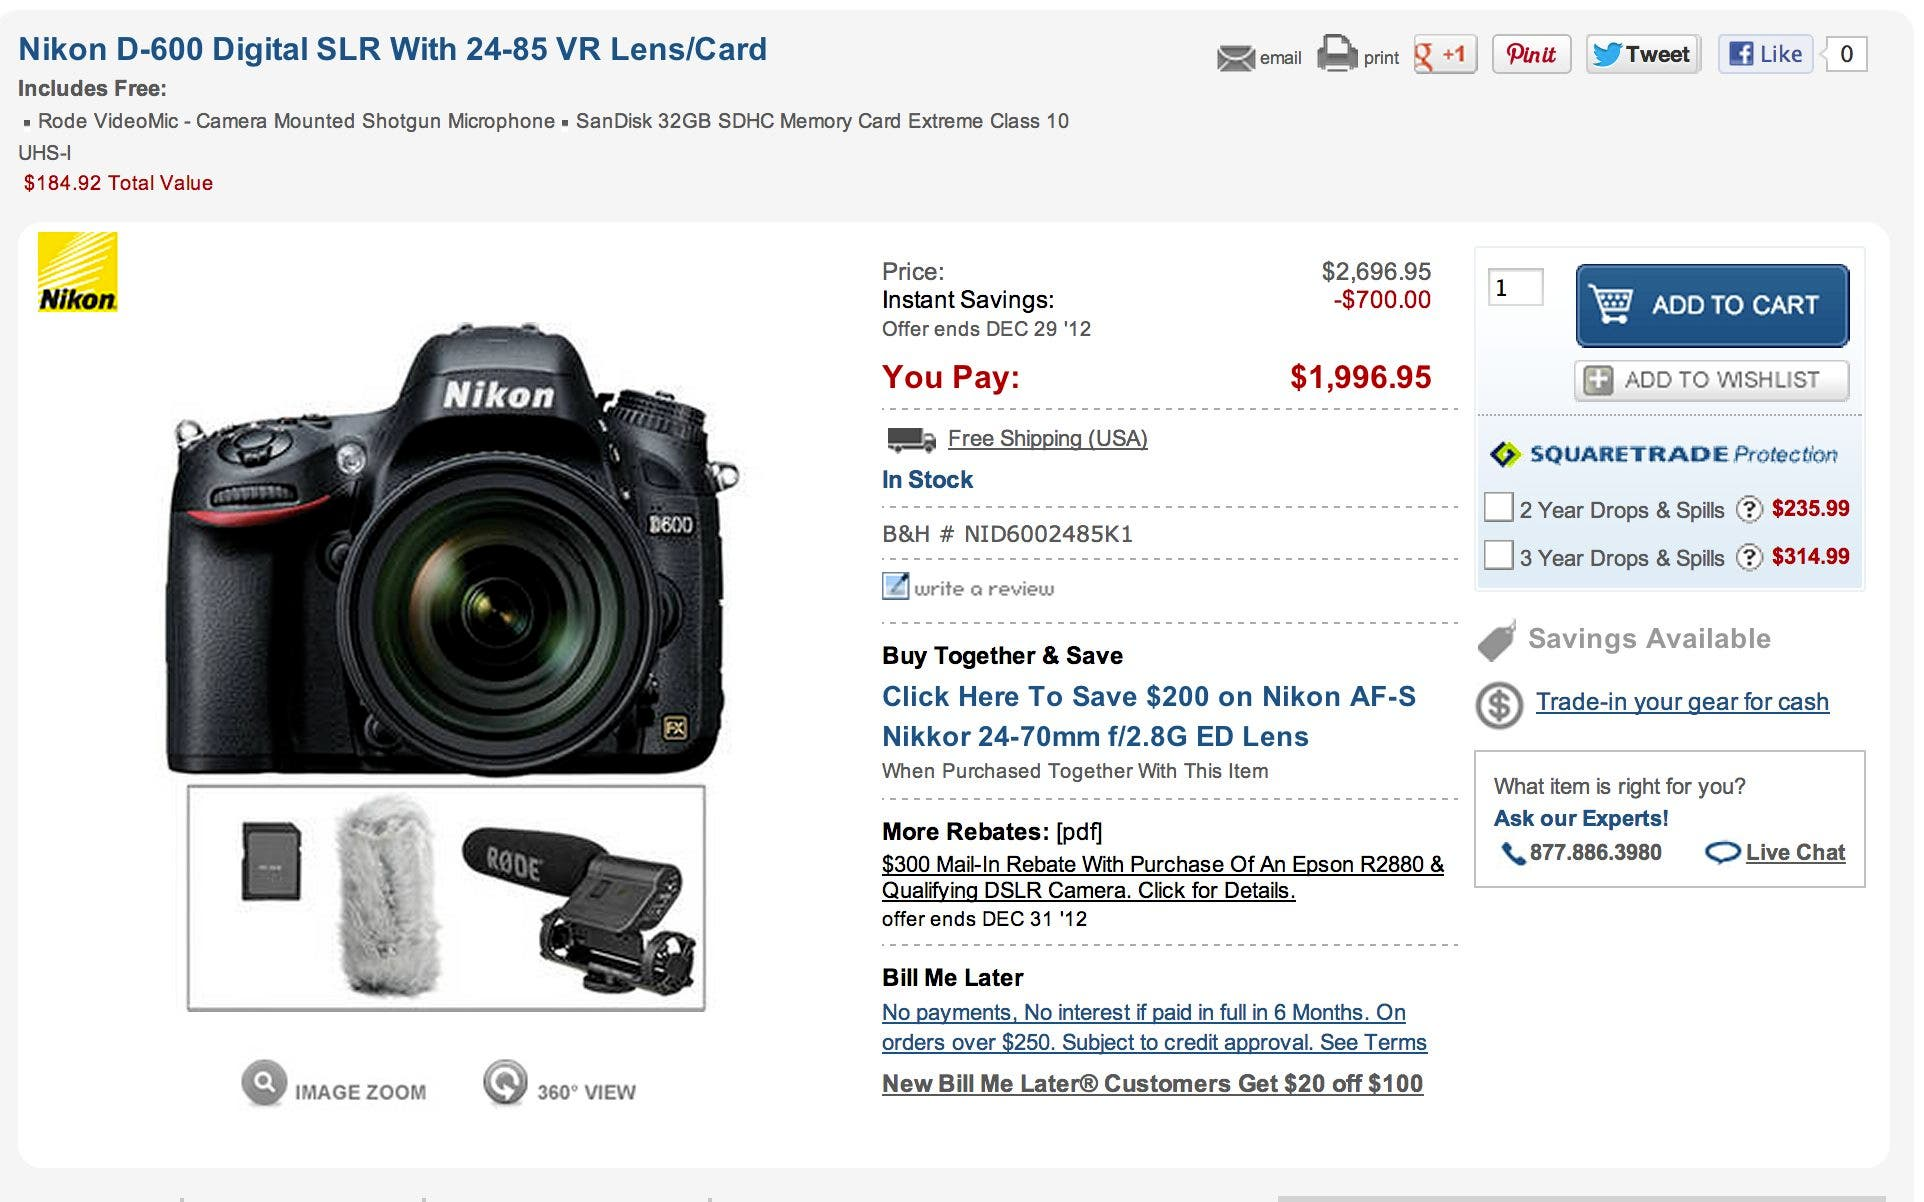 Cheap Photo: Gifts for Christmas Part II (D600 Deals, Plus Canon Stuff)